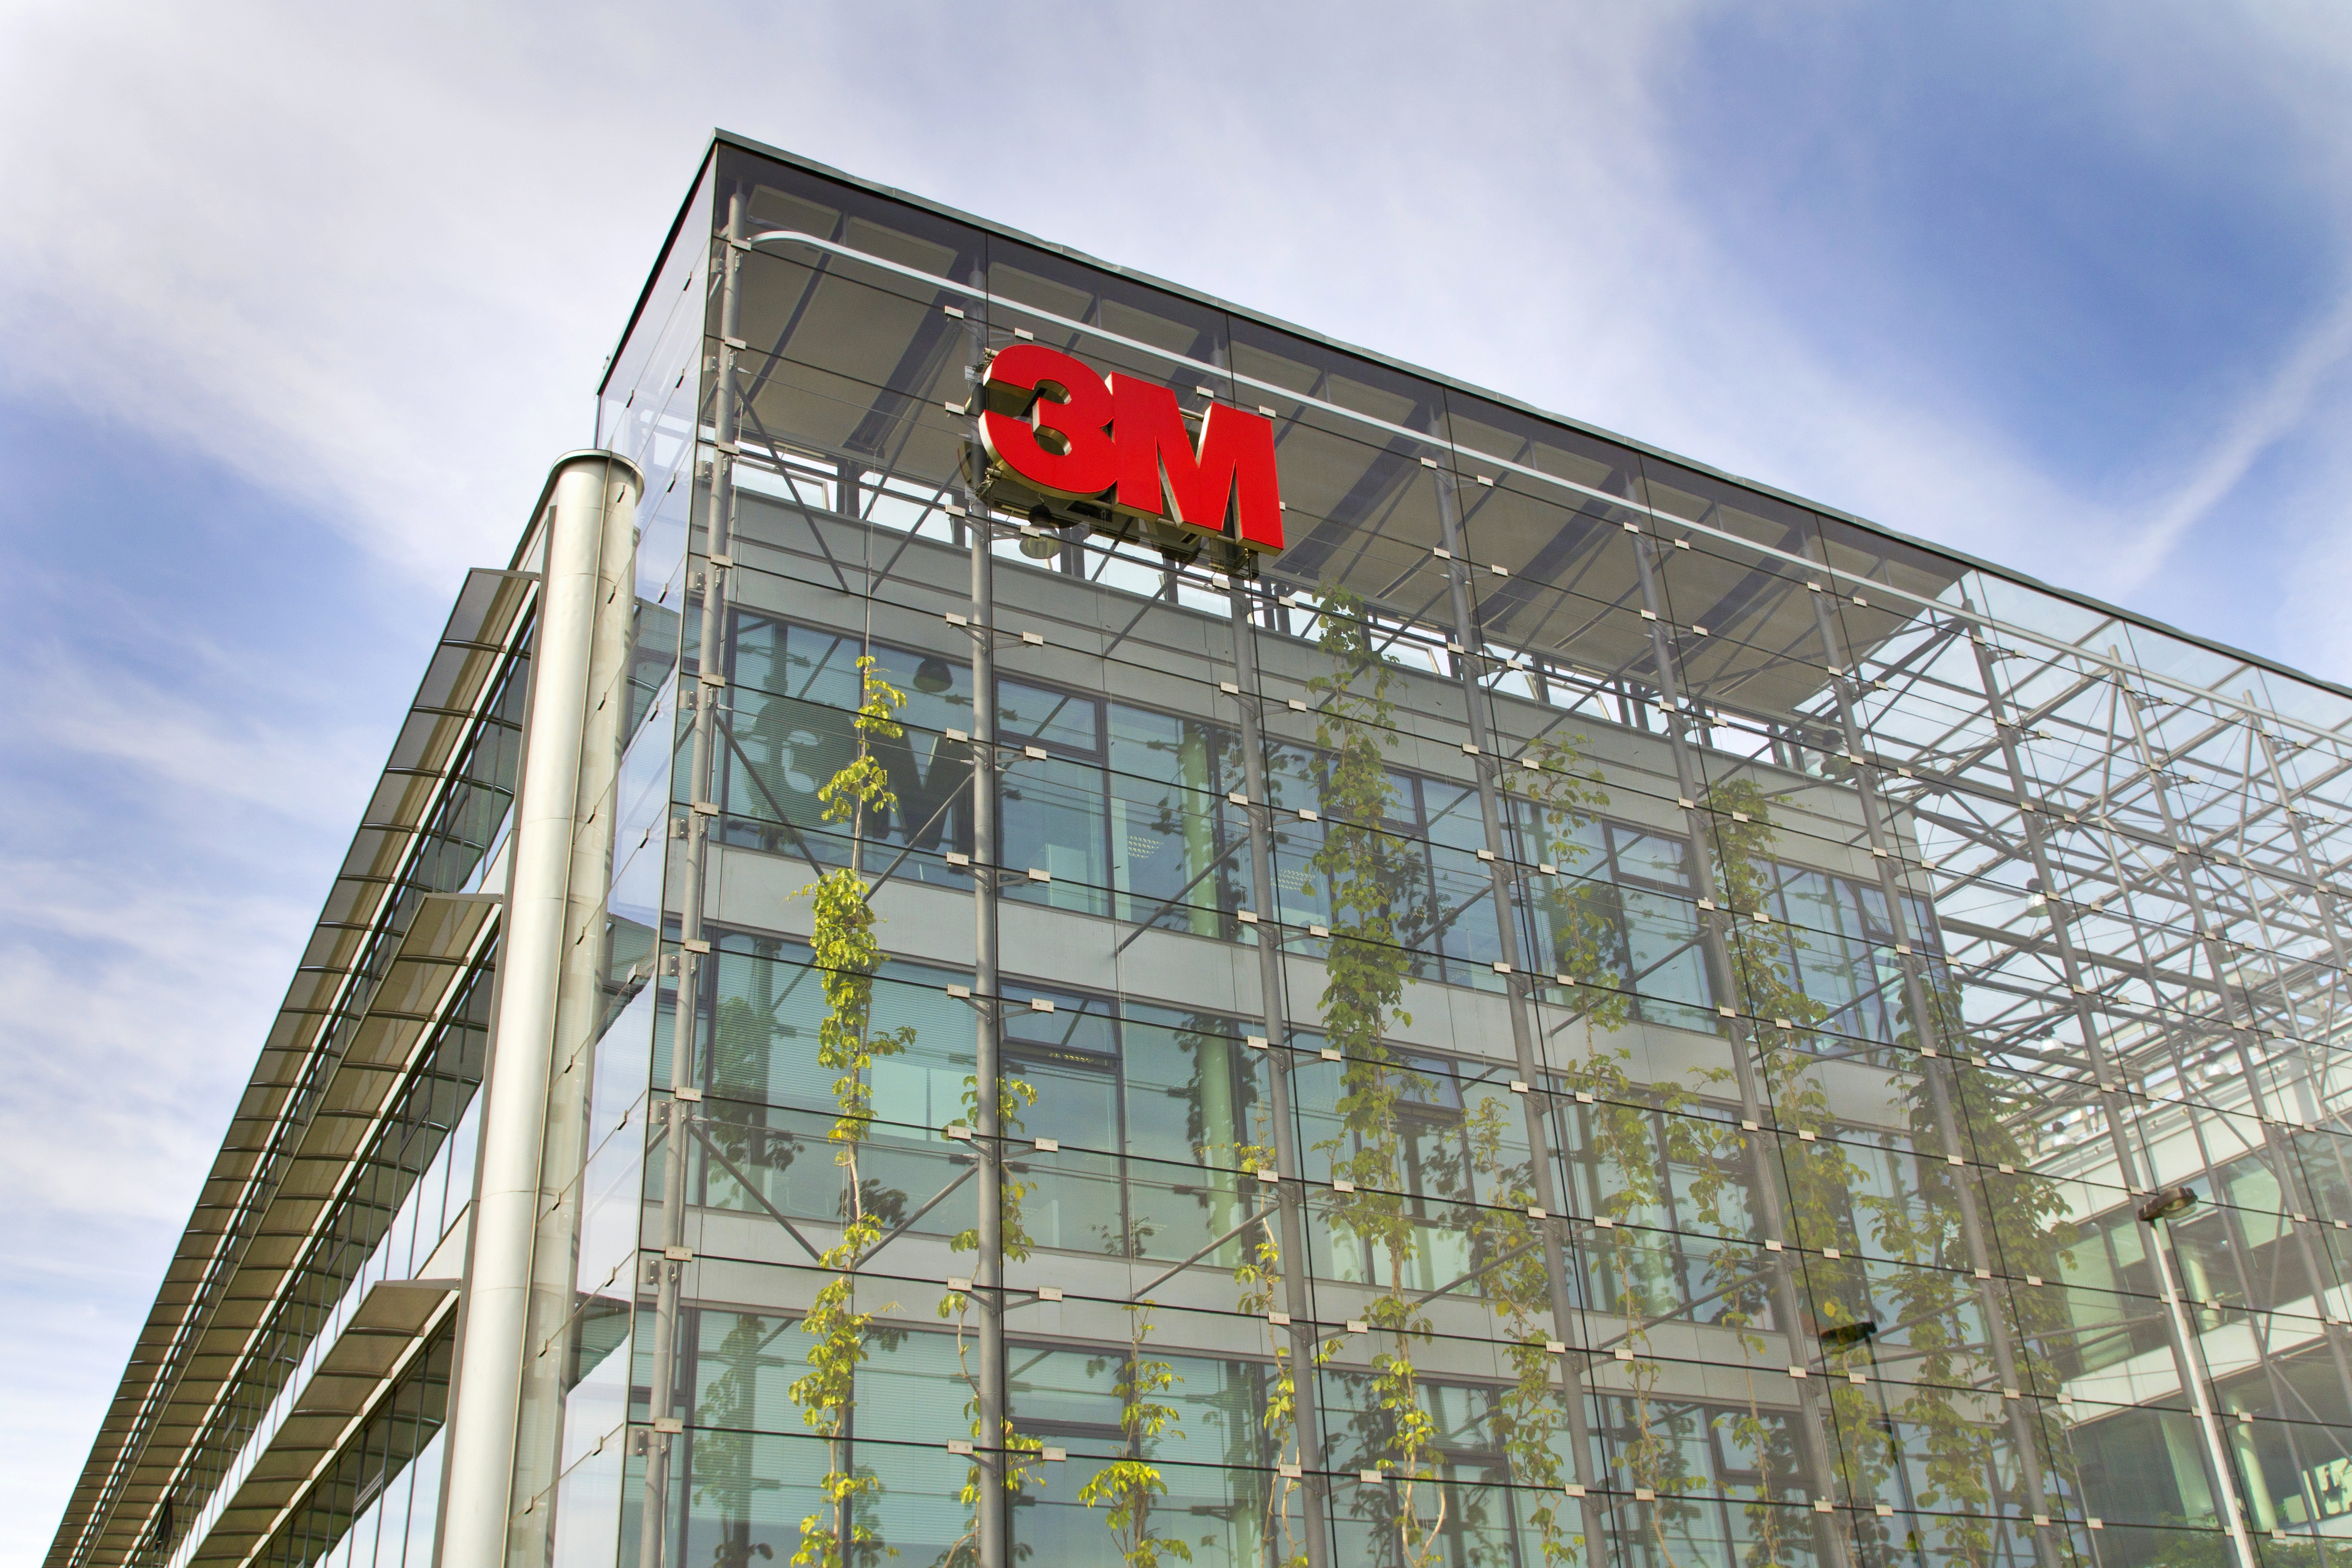 Prague, Czech republic - May 22, 2017: 3M company logo on headquarters building on May 22, 2017 in Prague, Czech republic. 3M CEO Thulin will no longer be required to retire at 65.